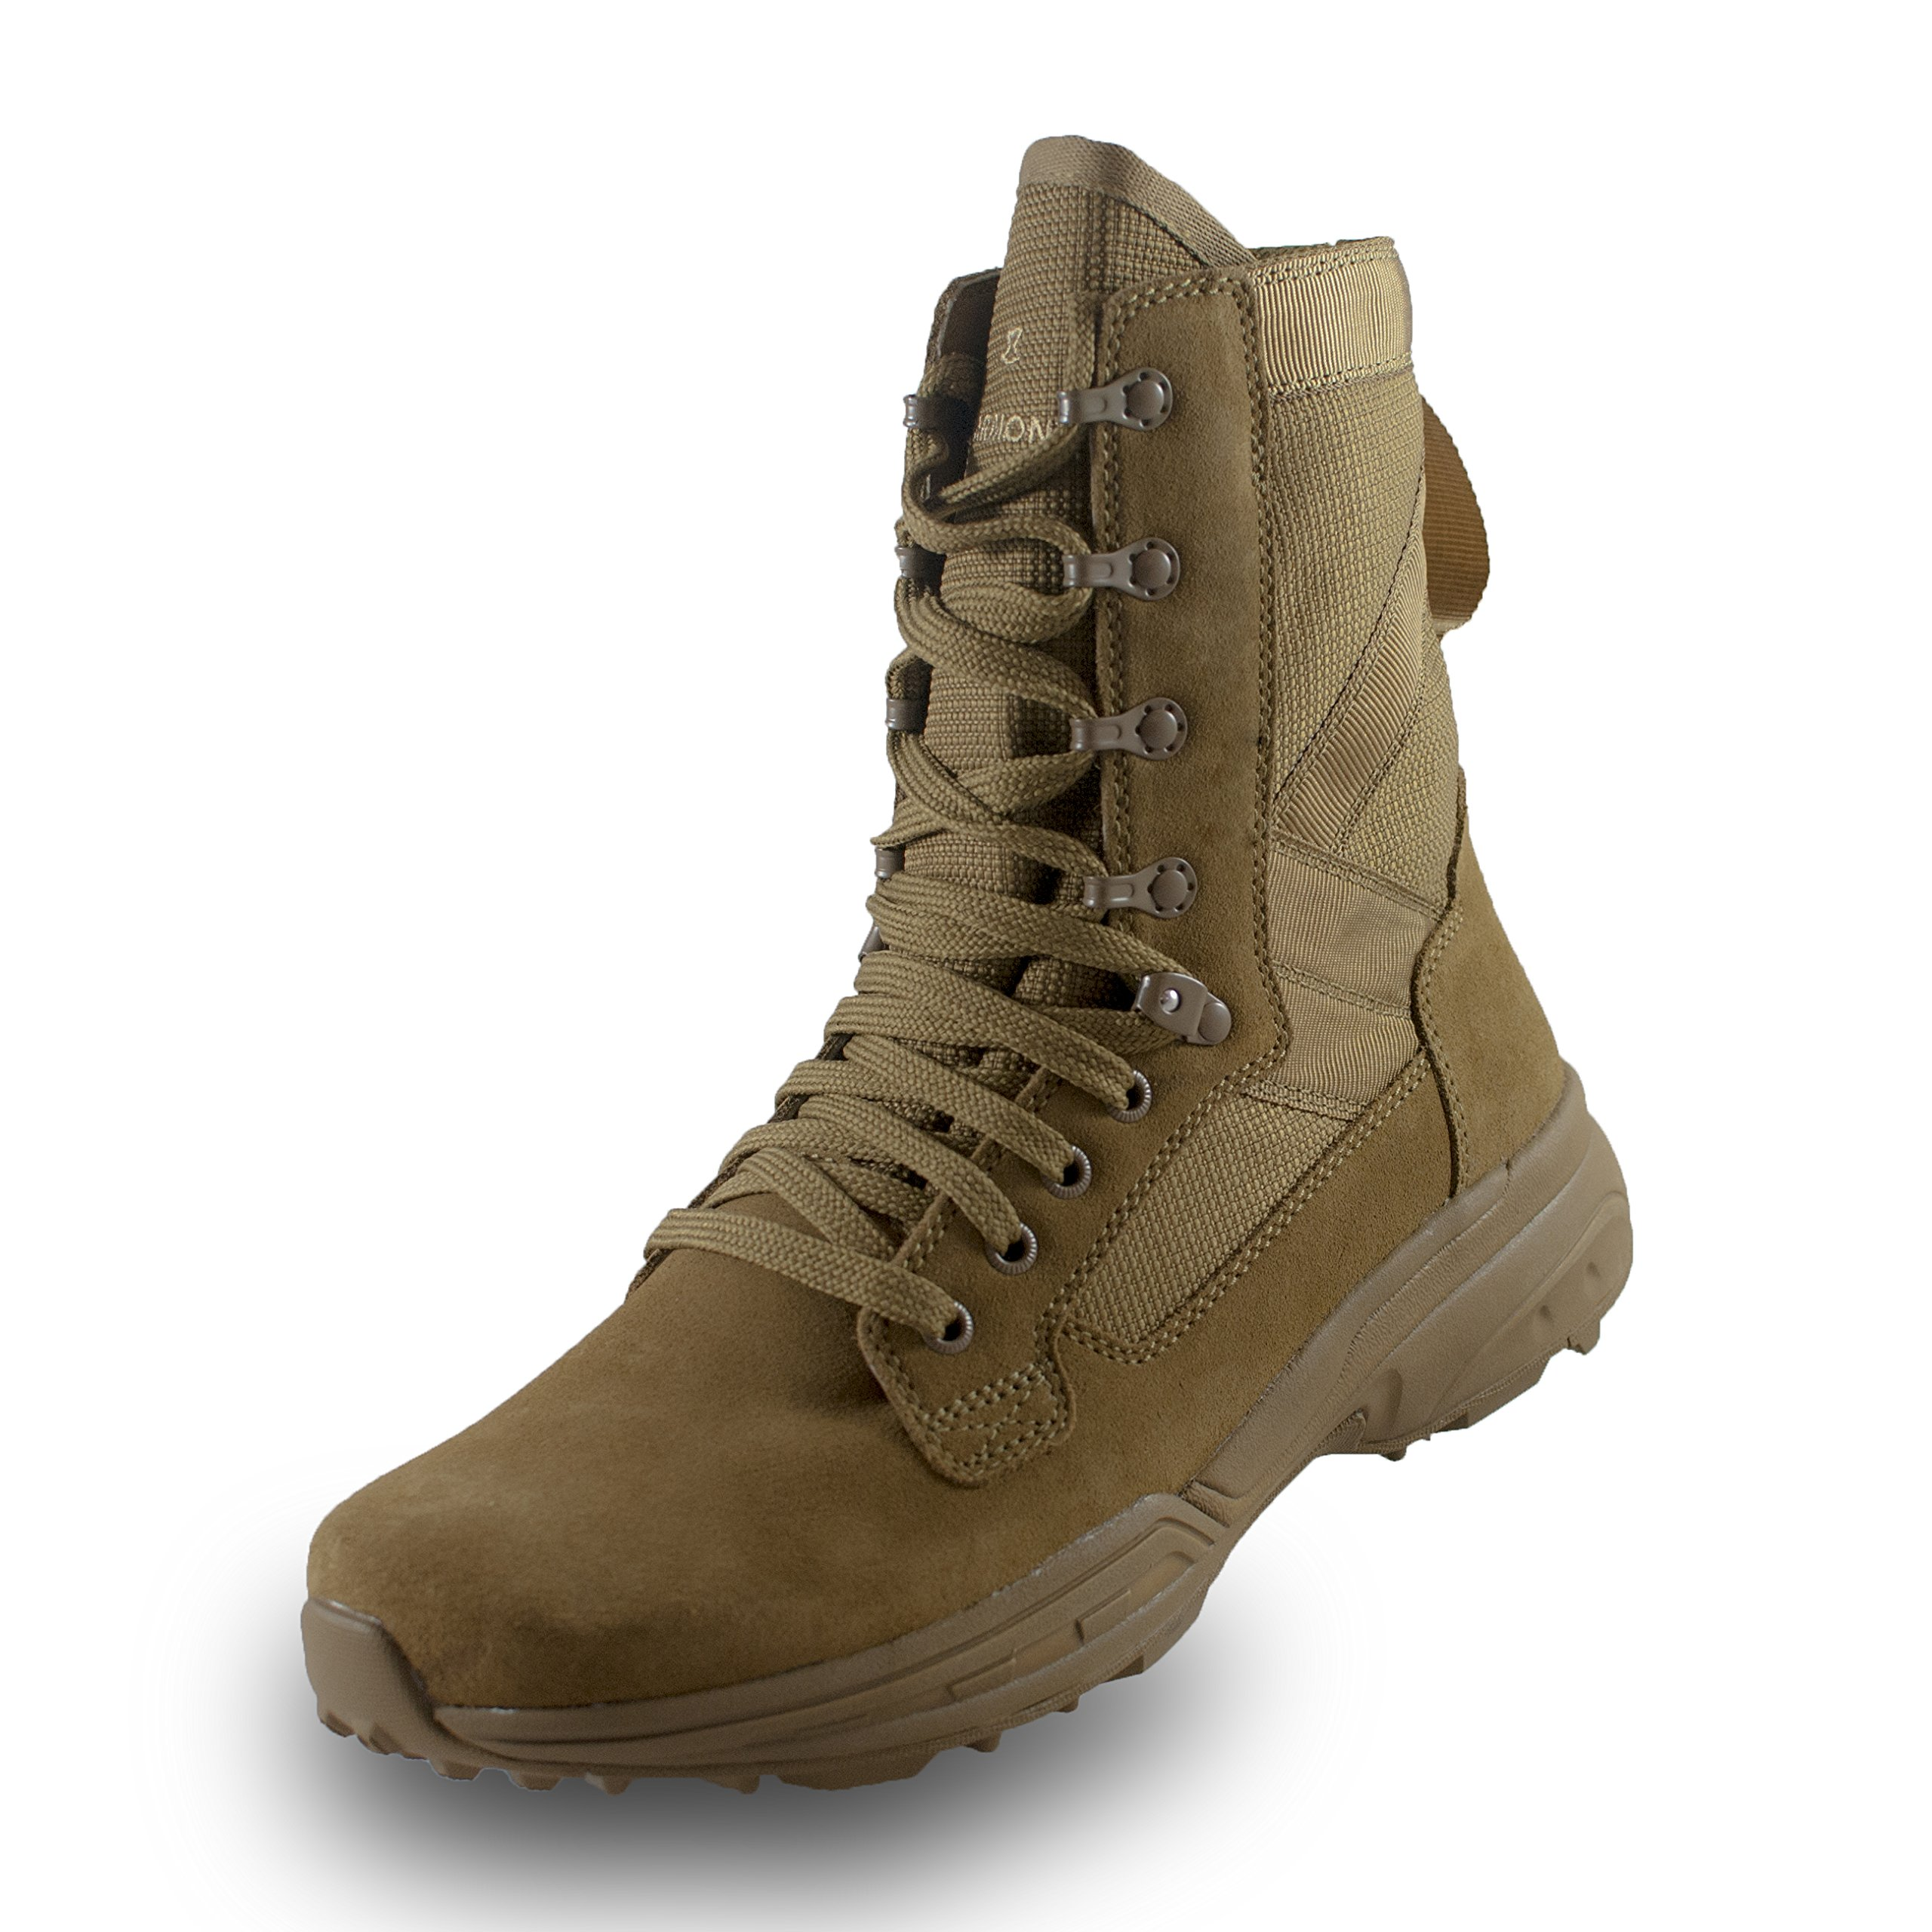 Garmont T8 NFS Tactical Boot - Coyote, 10 M US by Garmont